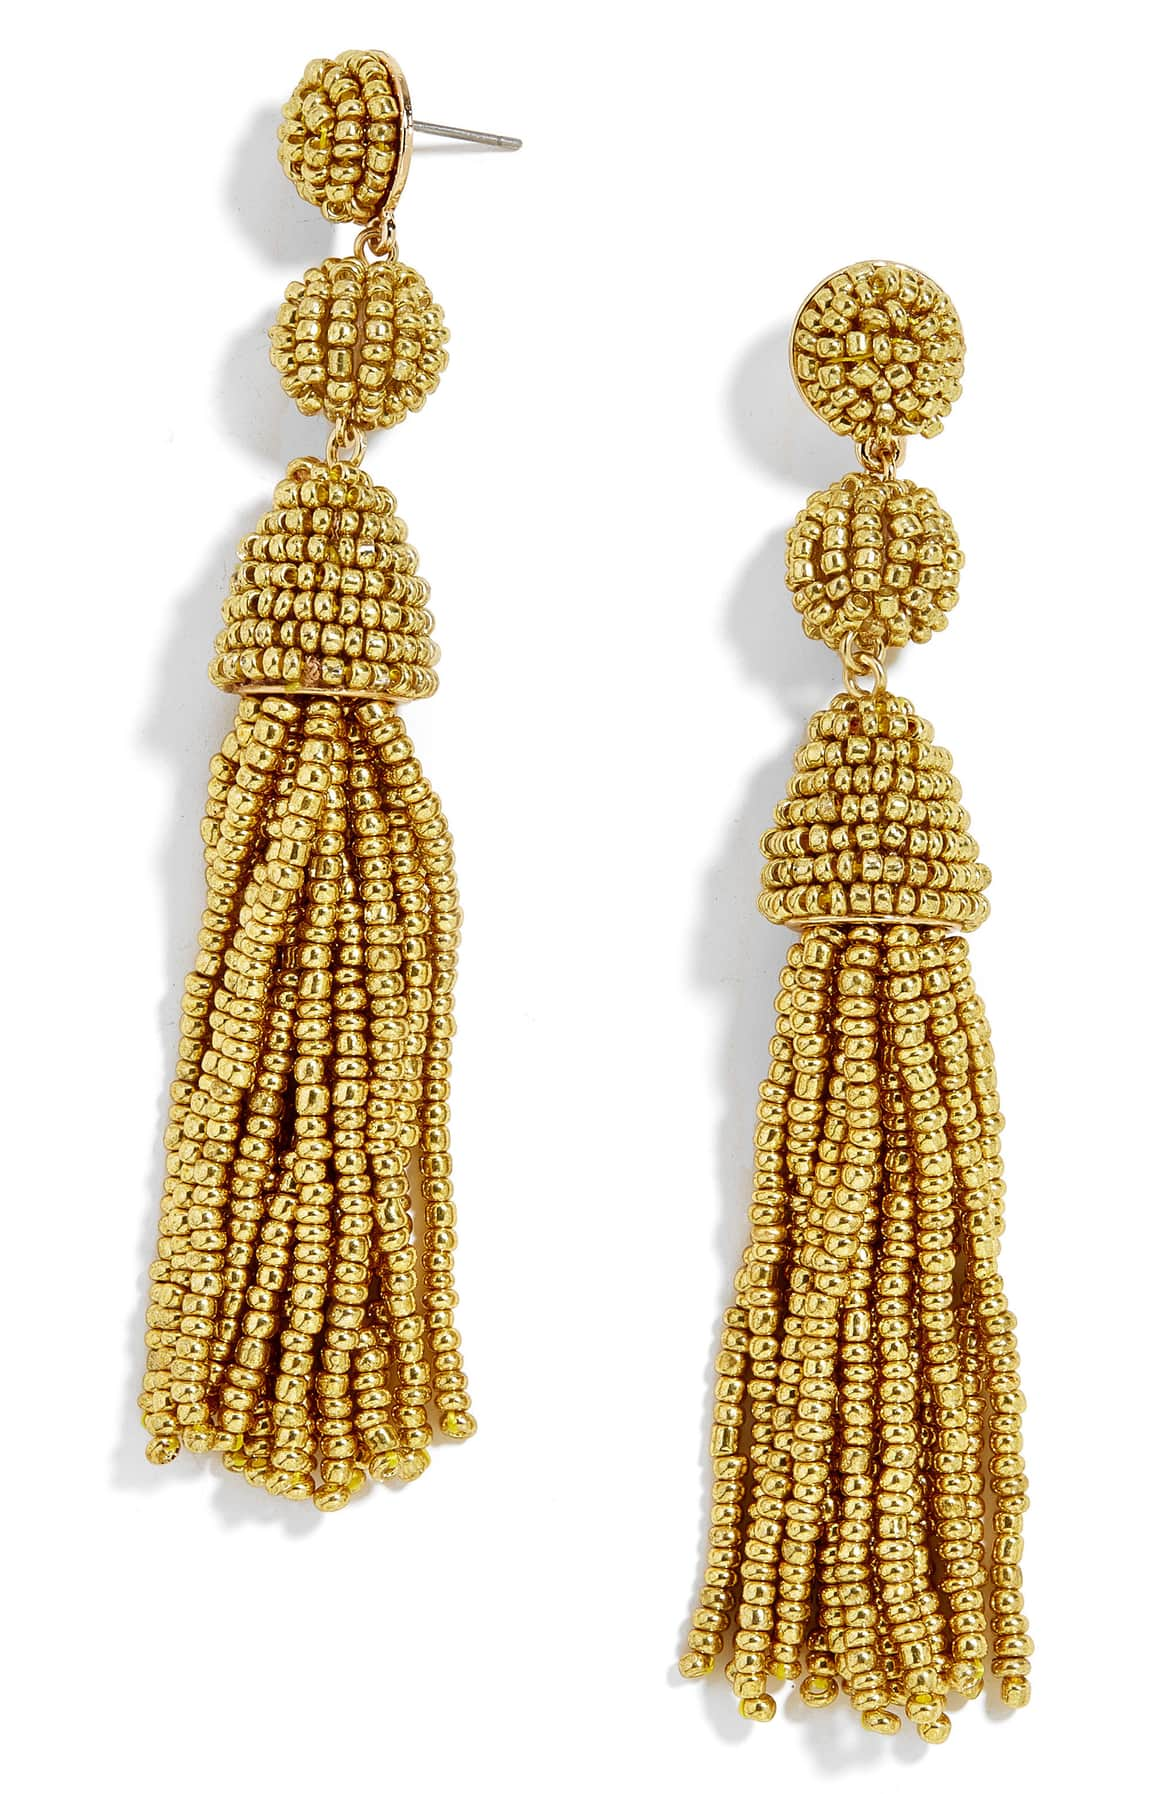 Beaded tassels make these lightweight drop earrings a fresh, fun addition to your retro-chic style. $38 (Image: Nordstrom)